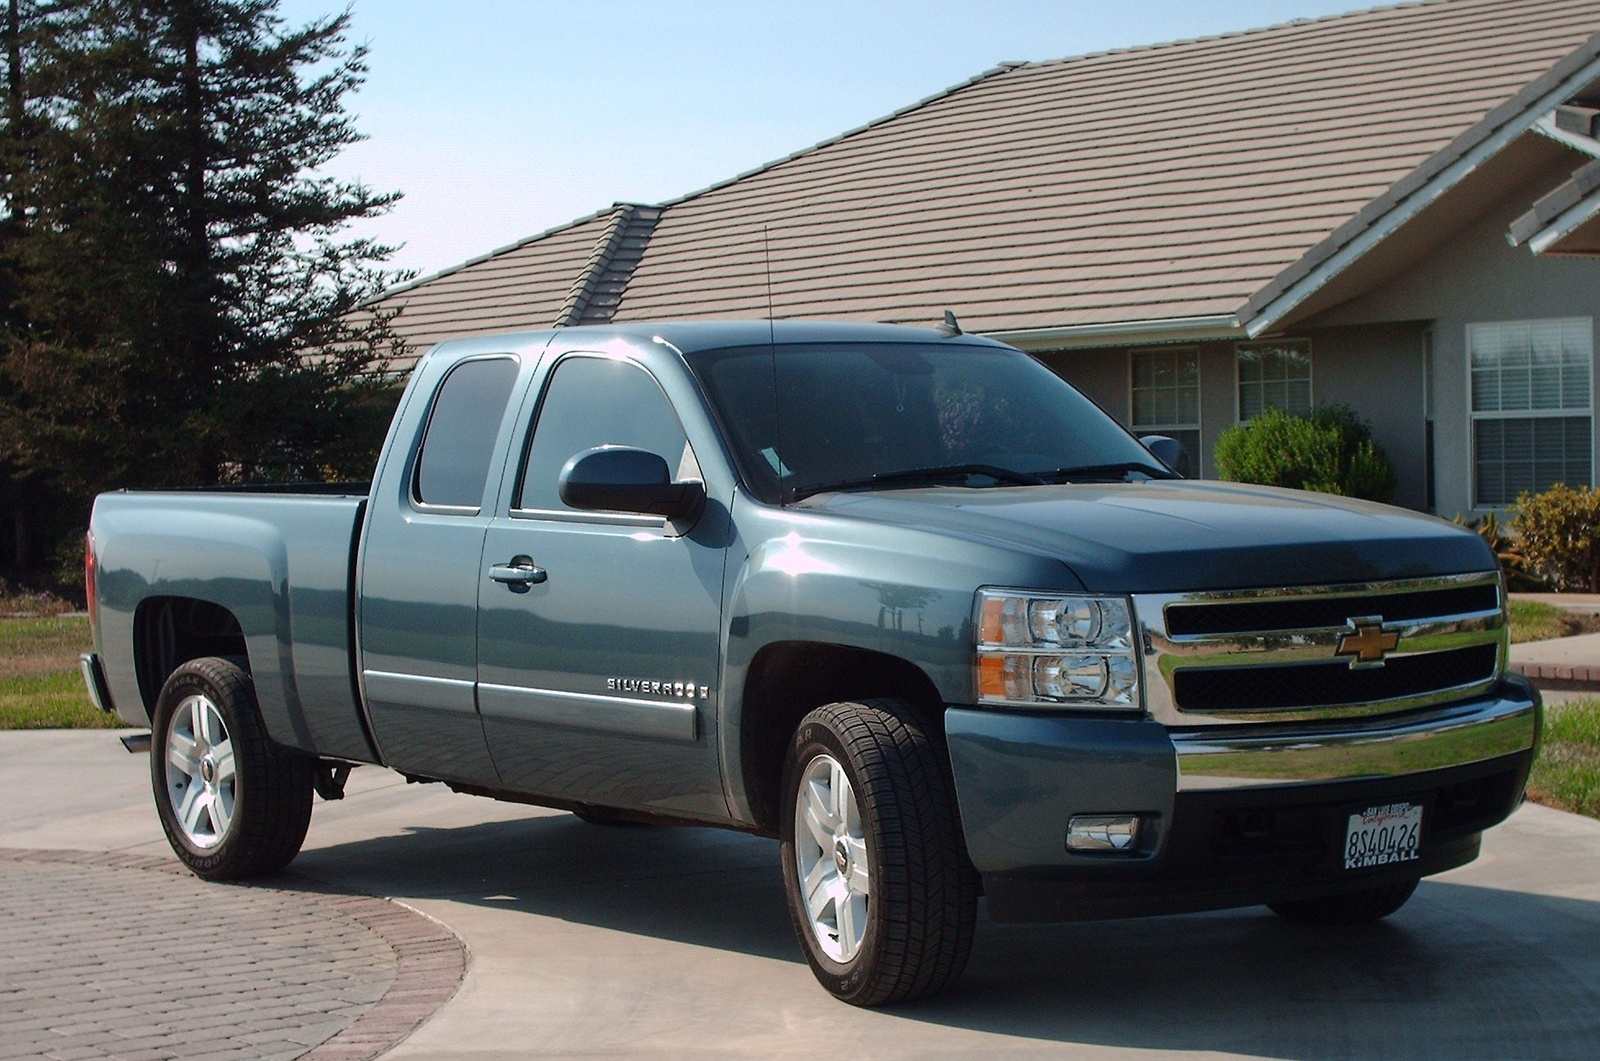 2008 chevrolet silverado 1500 pictures cargurus. Black Bedroom Furniture Sets. Home Design Ideas